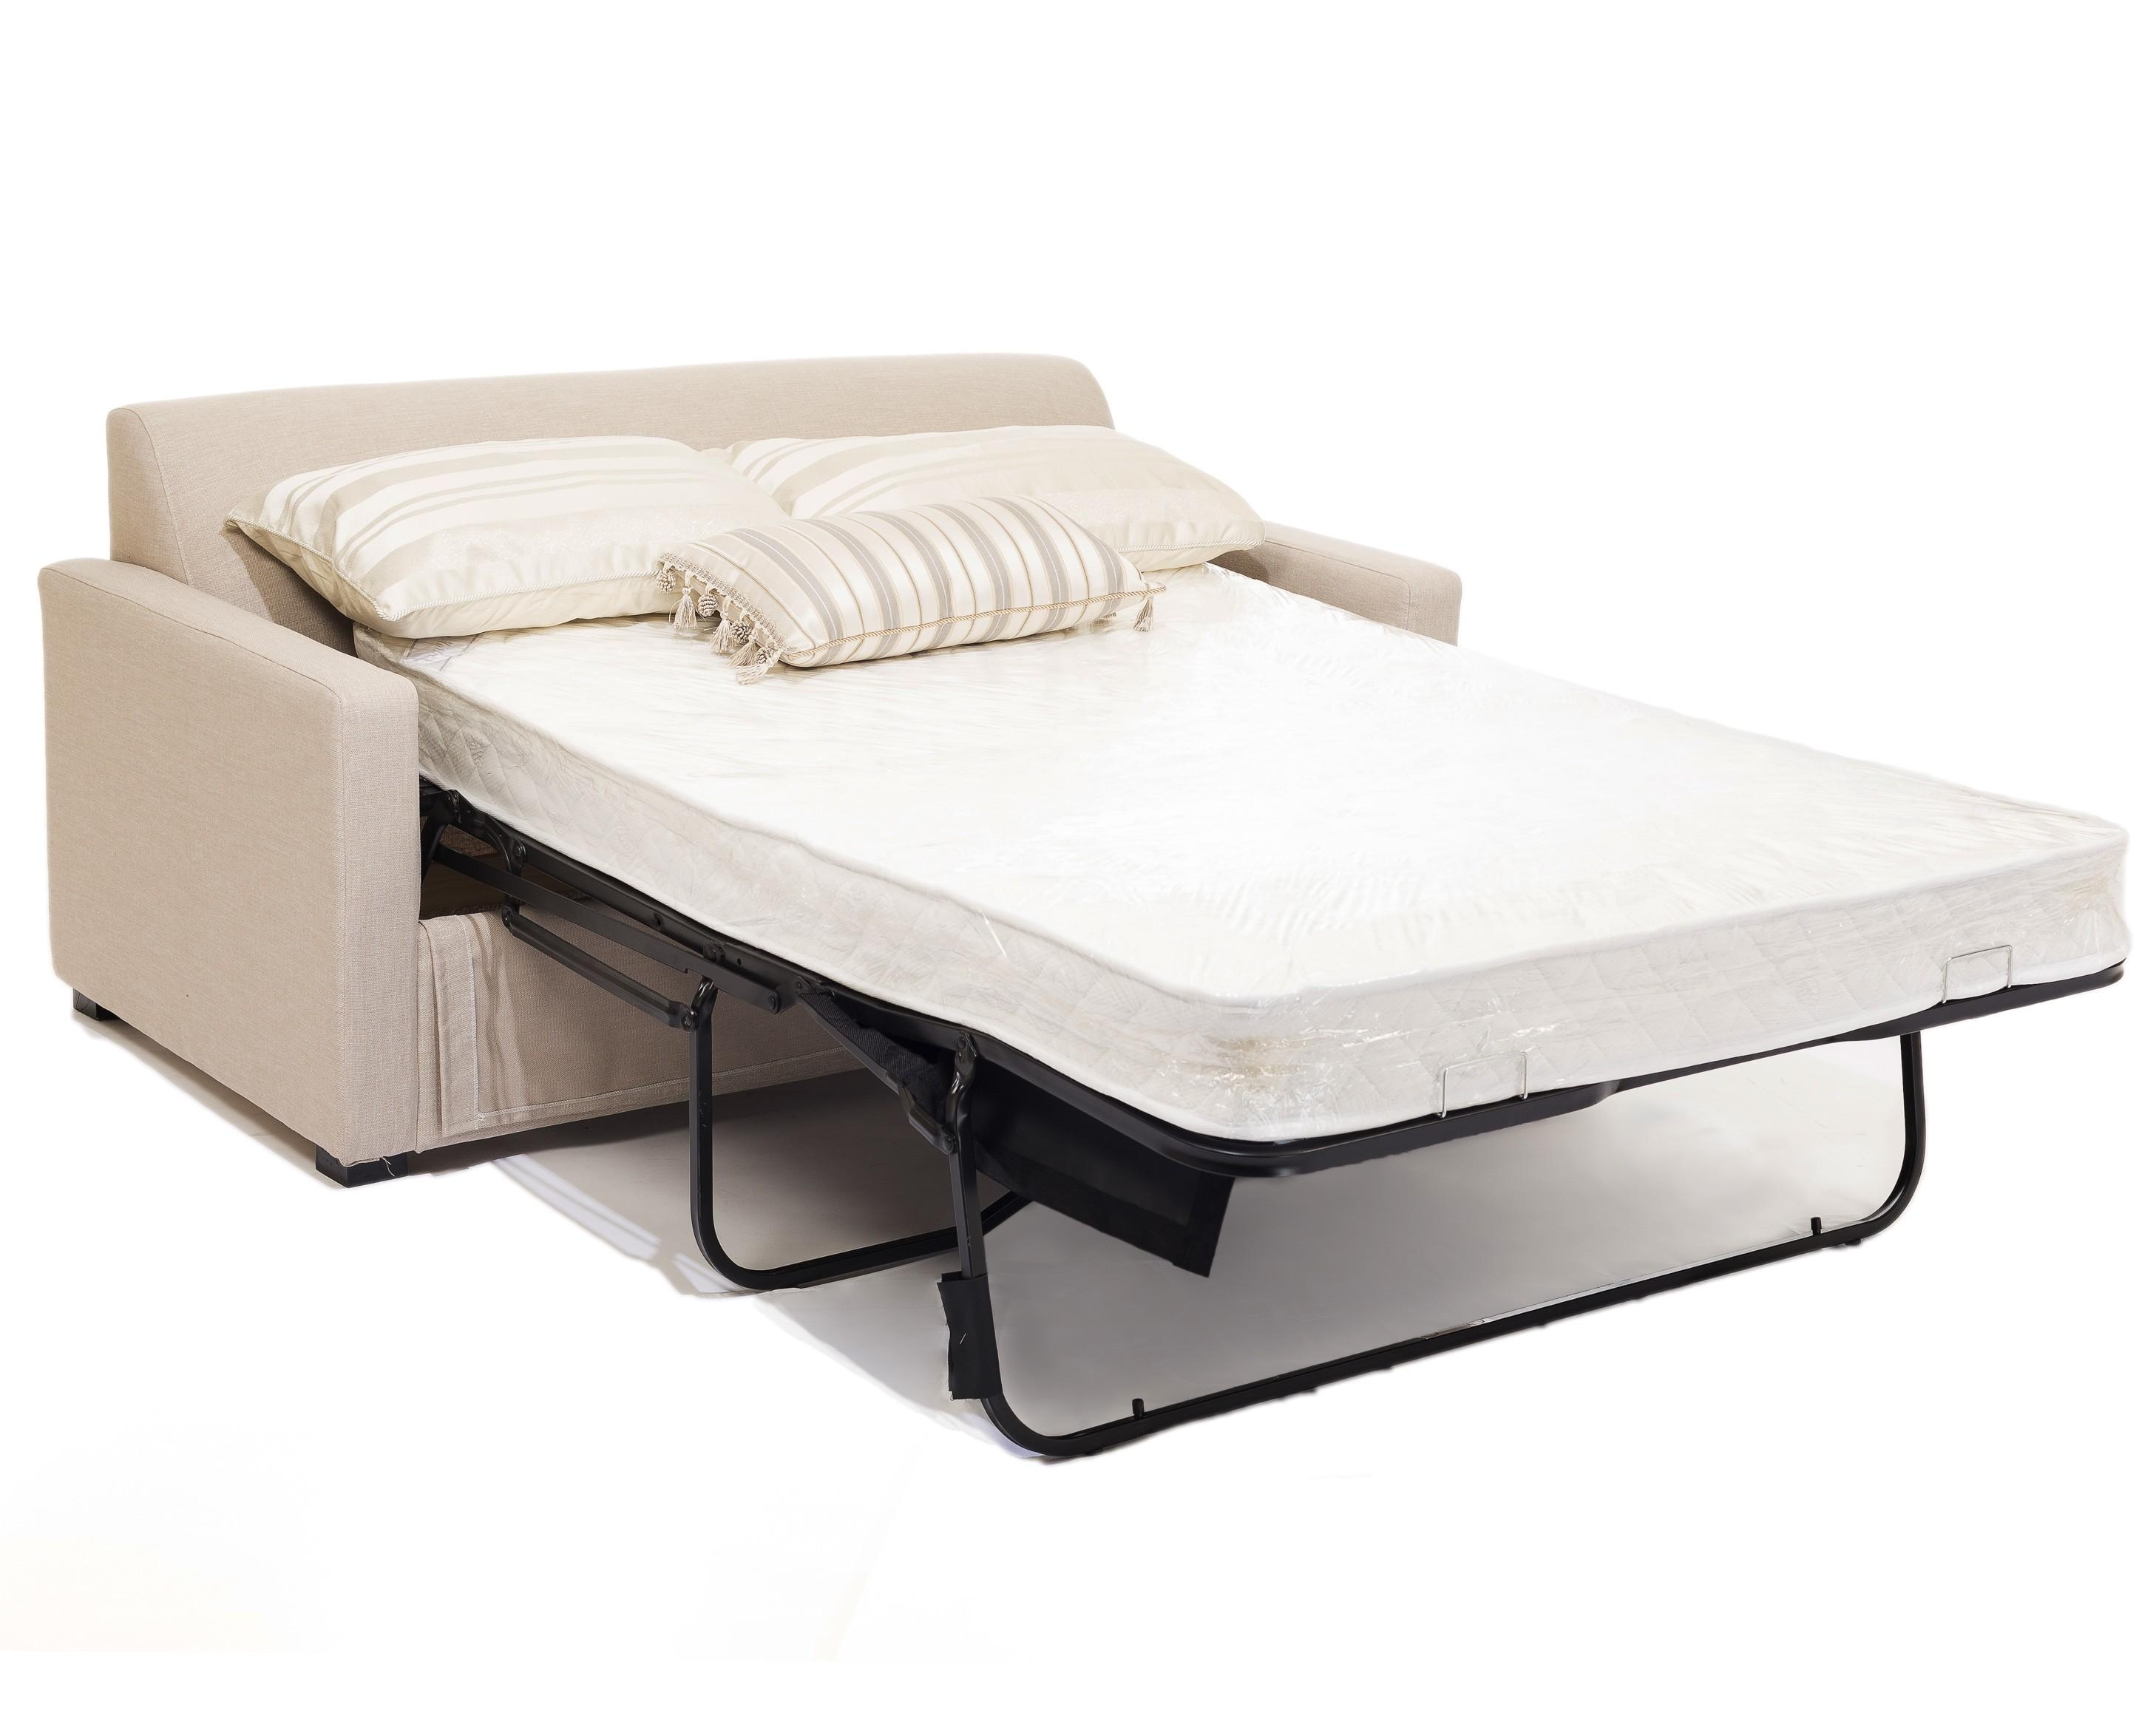 Hide A Bed Mattresses Queen Size | Best Mattress Decoration Throughout Sofa Sleepers Queen Size (Image 9 of 20)